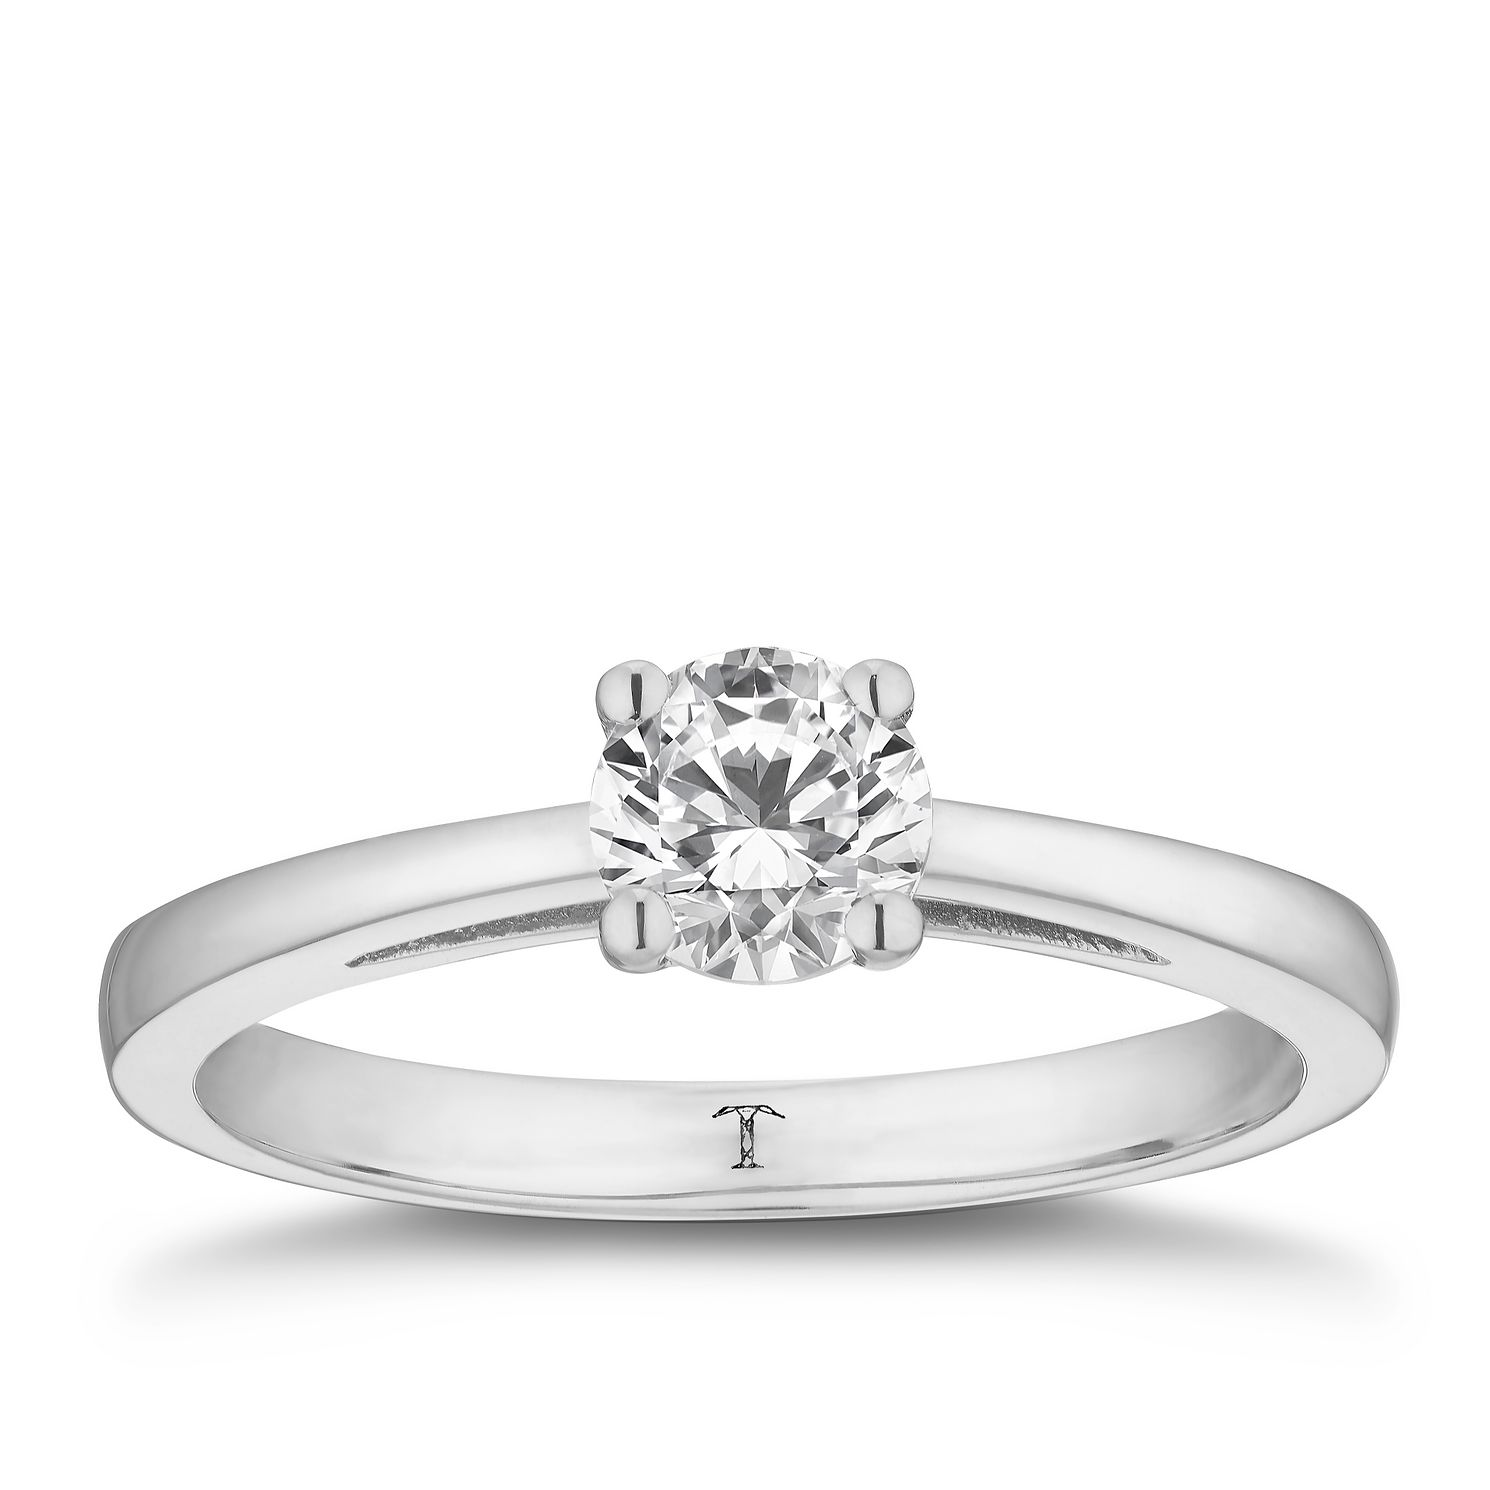 Tolkowsky 18ct White Gold 2/3ct Hi-Si2 Diamond Ring - Product number 8698007